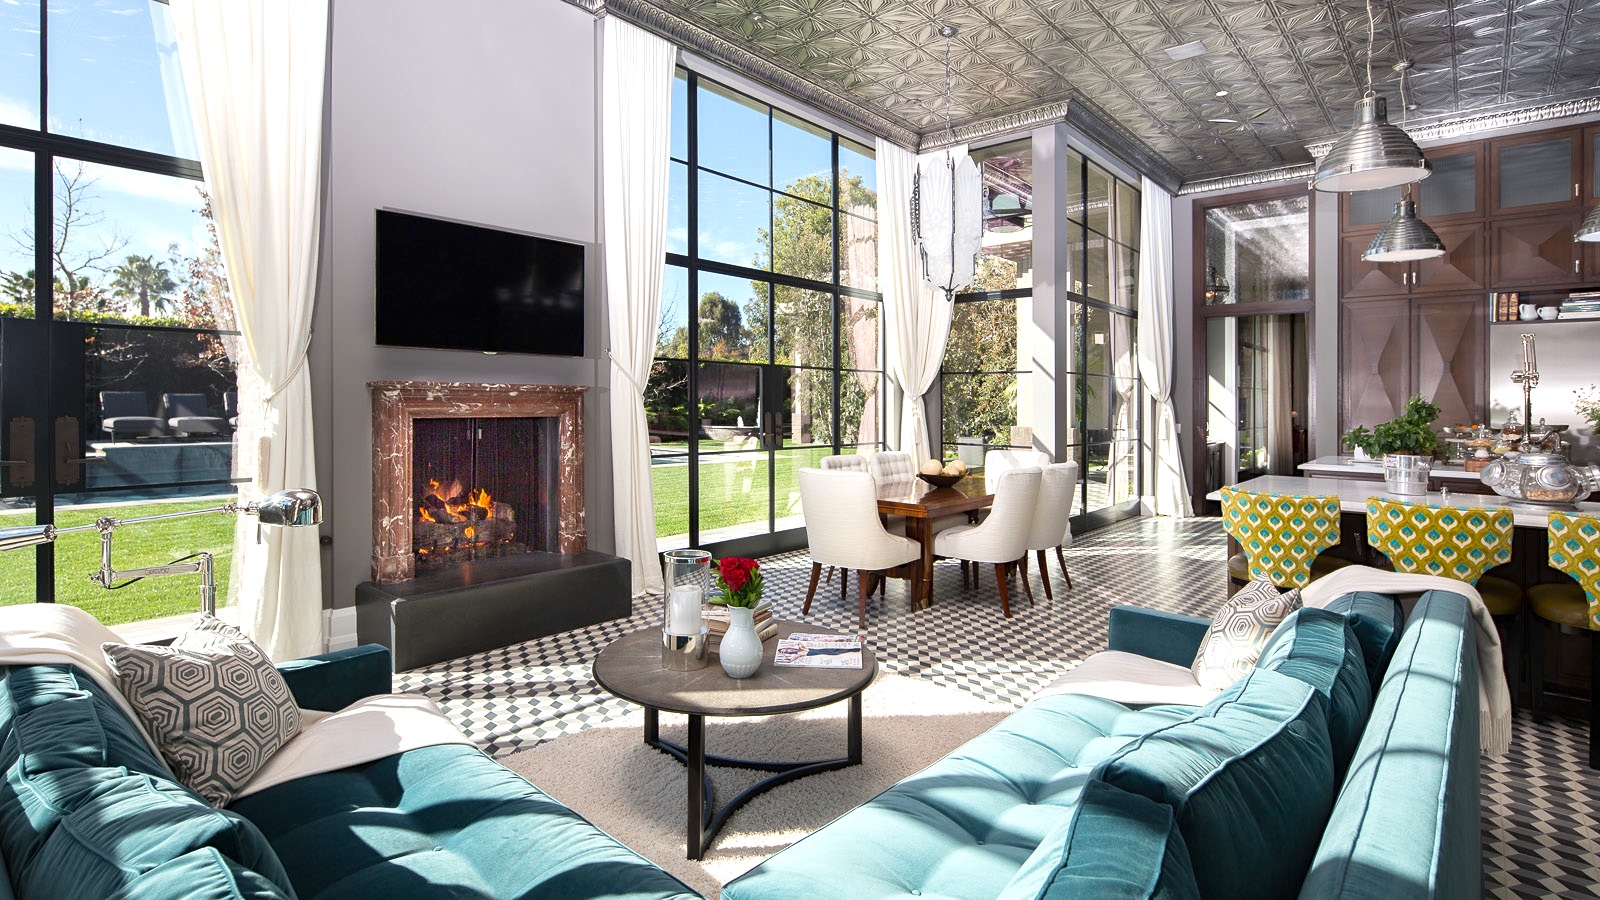 COCOCOZY: $25 MILLION DOLLAR ART DECO STYLE ESTATE - SEE THIS HOUSE